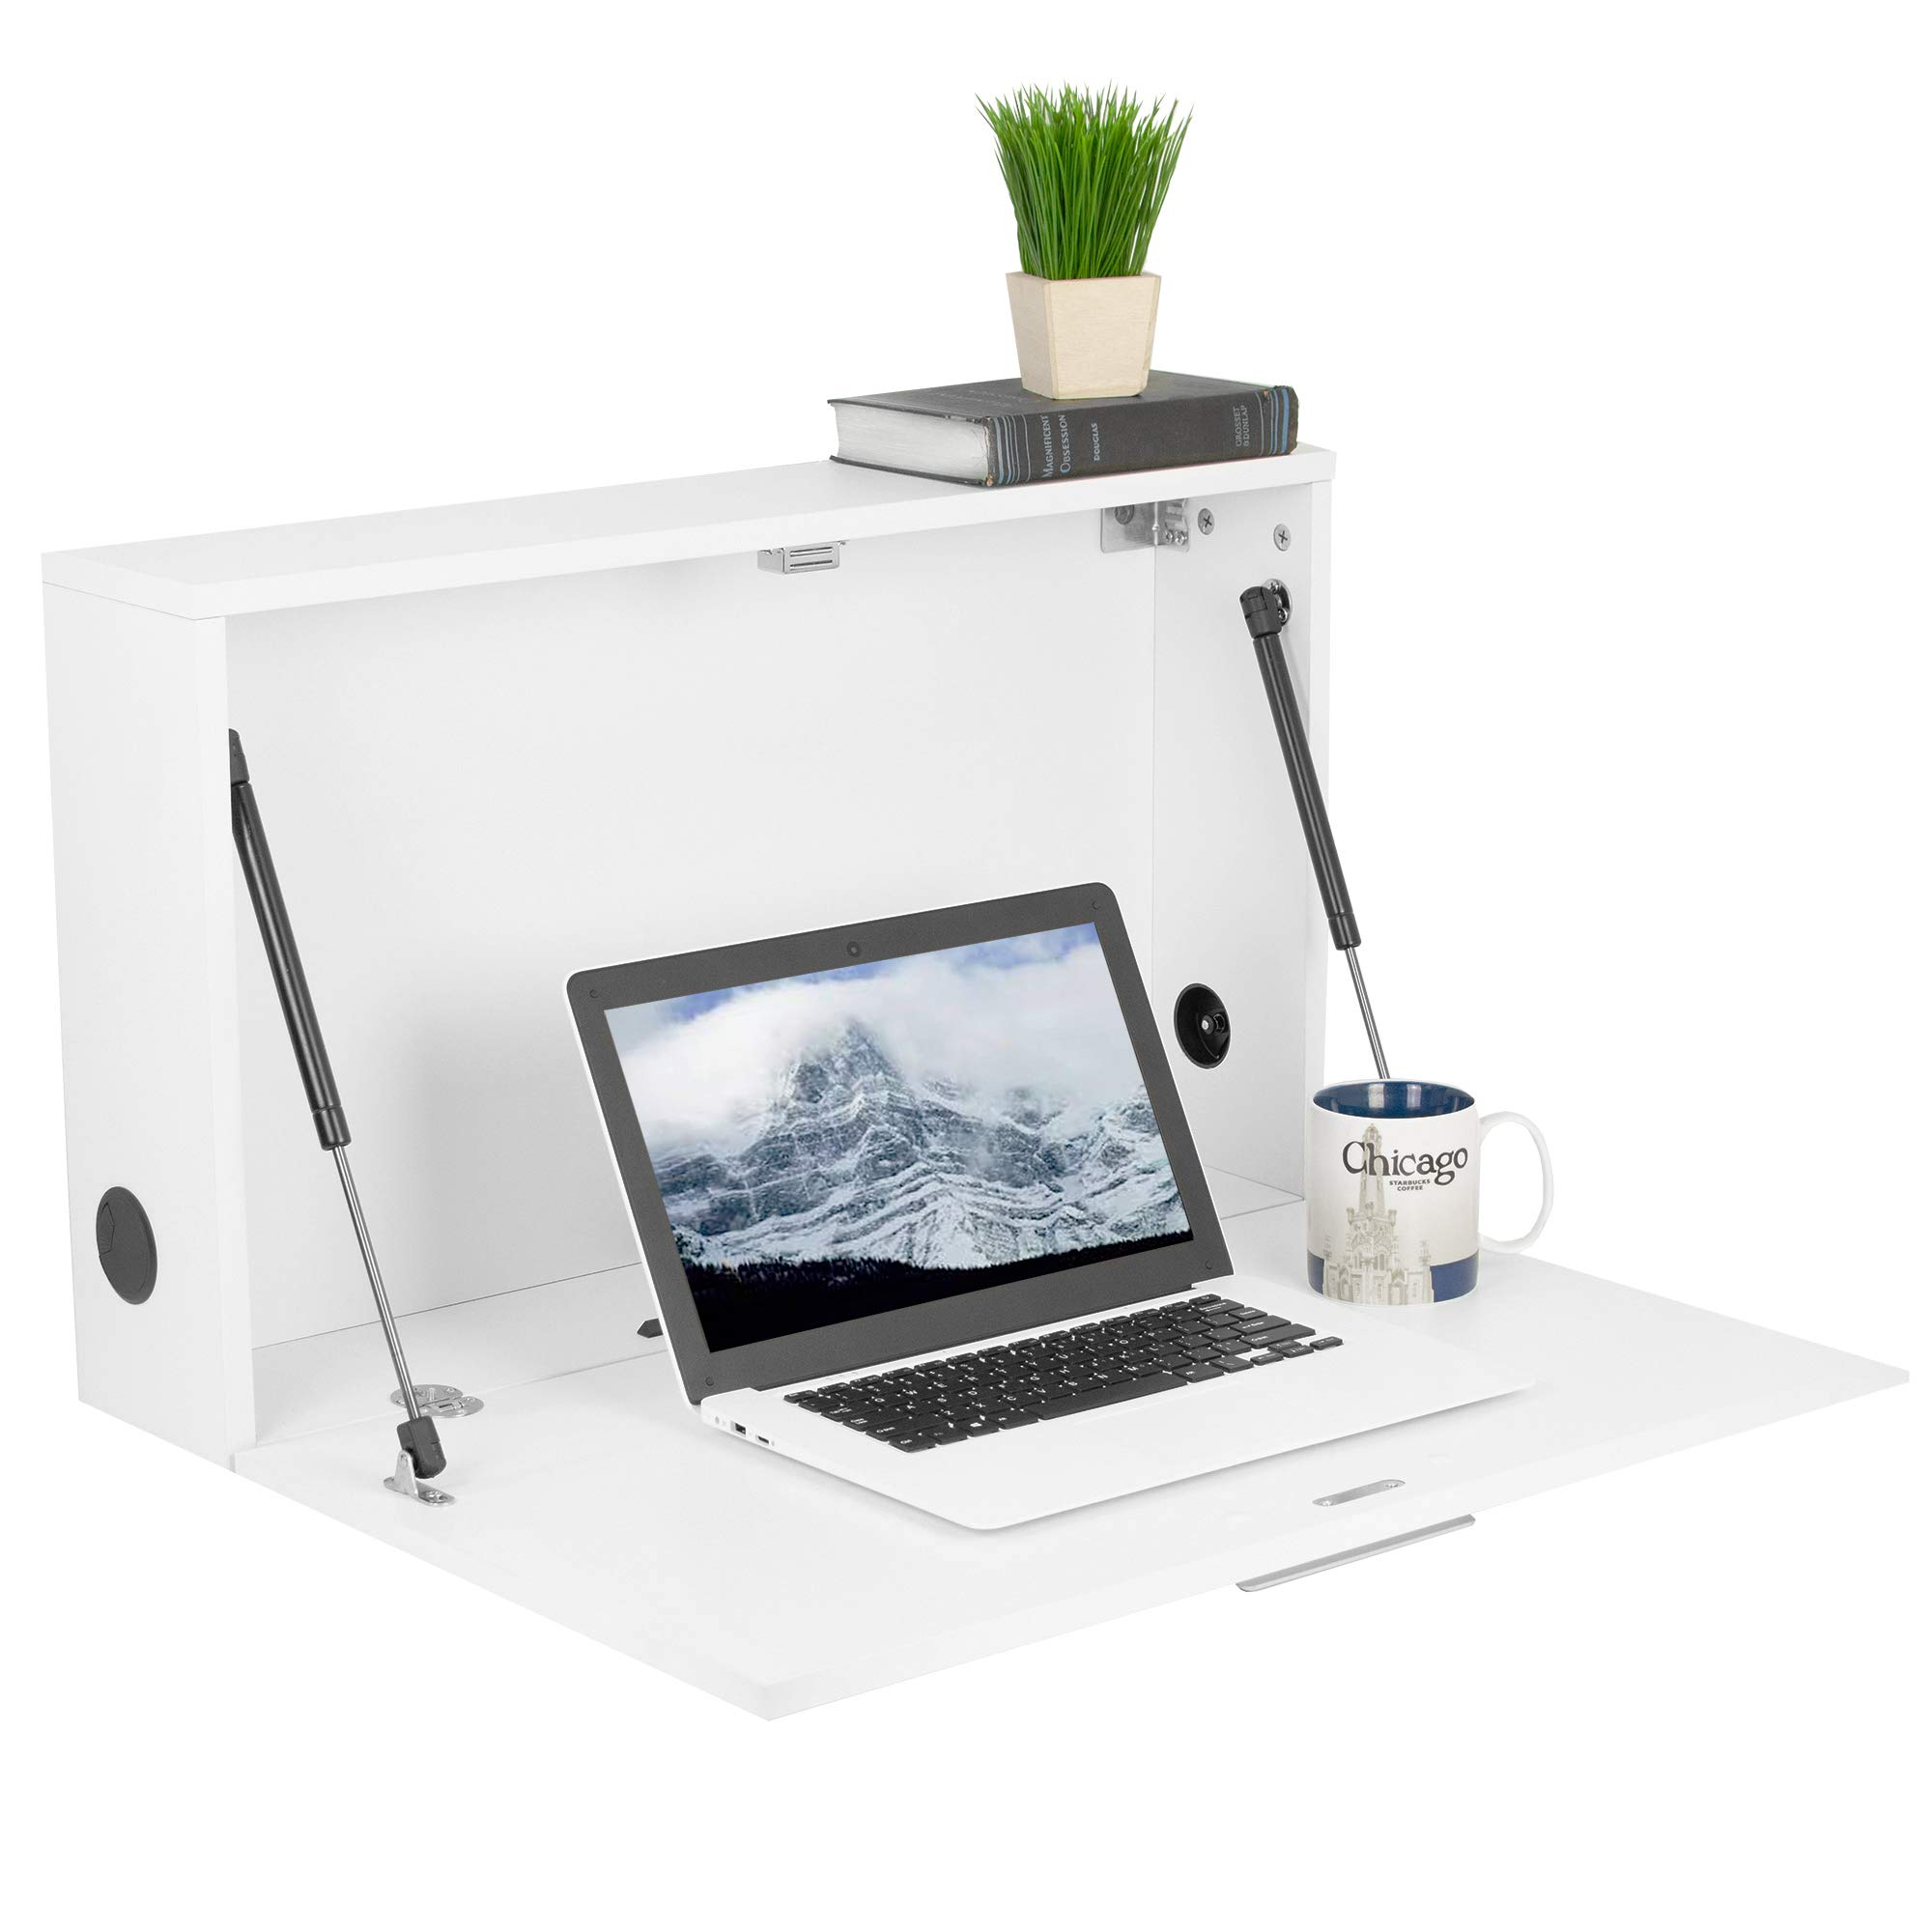 VIVO White Wall Mounted 28 inch Drop Down Laptop Desk Workstation and Storage Cabinet | Pneumatic Spring Wall Organizer, Pull Down Desk Drawer (DESK-SF02W) by VIVO